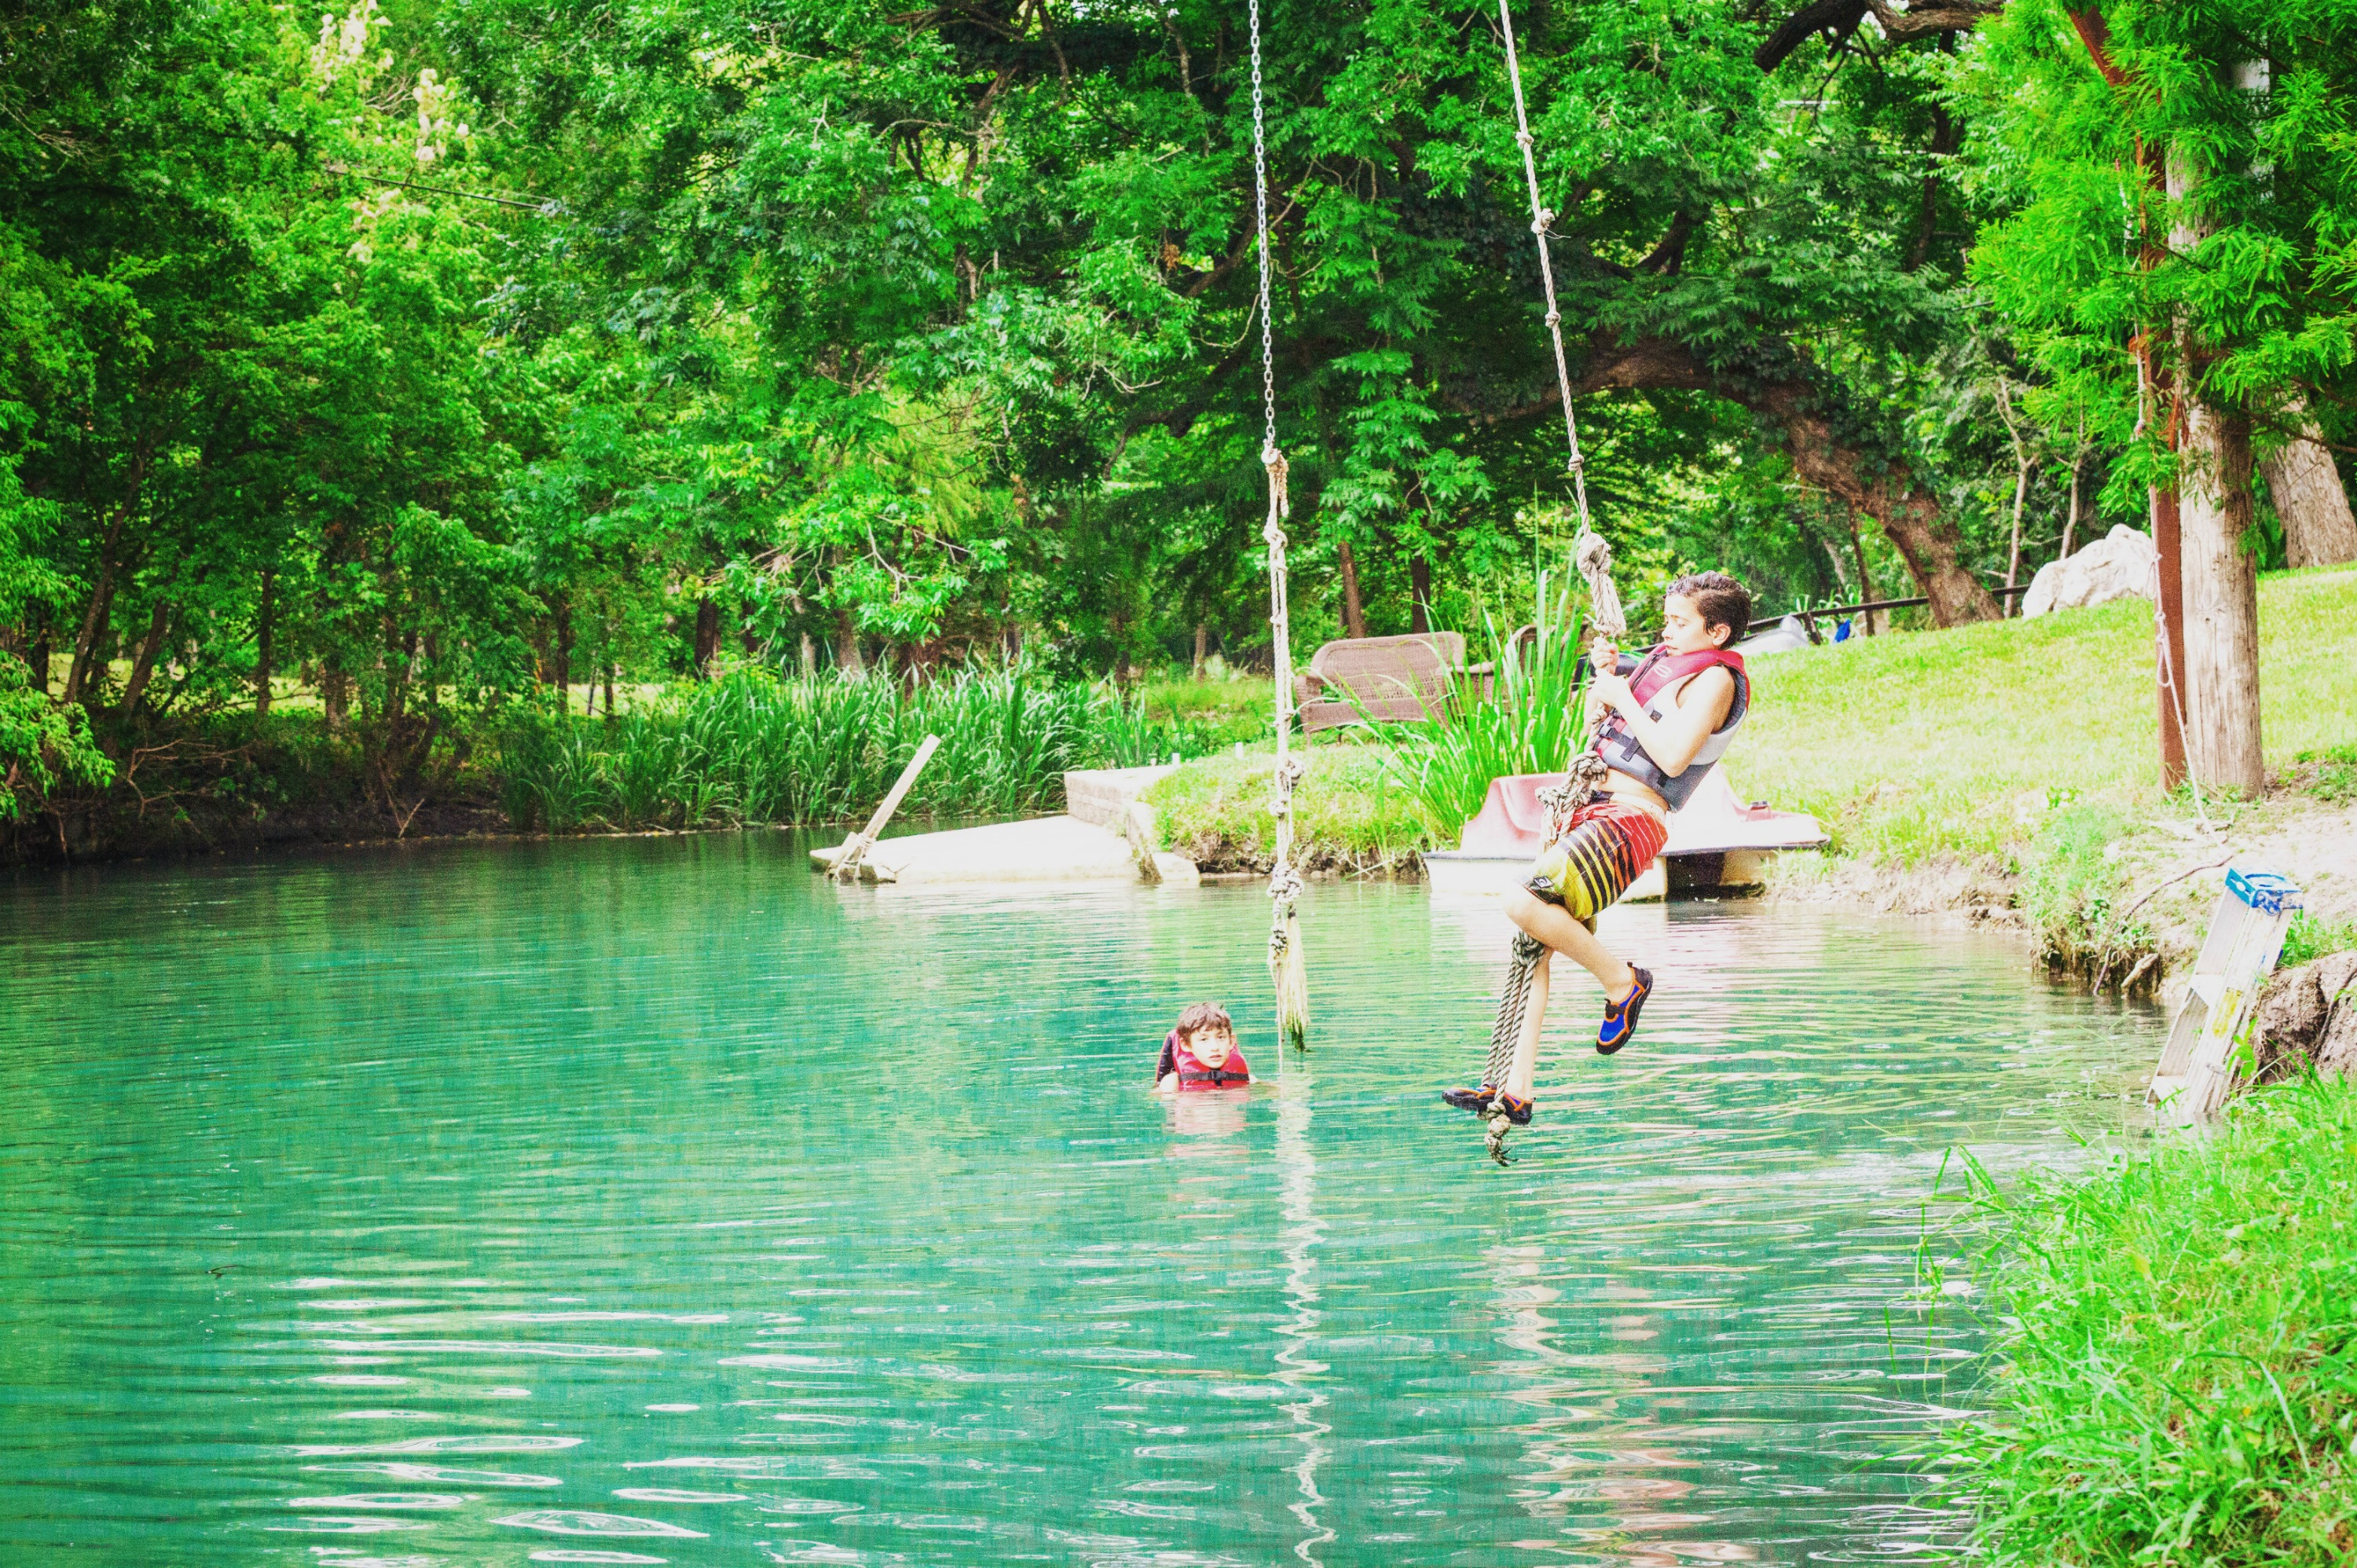 Geronimo Creek Retreat - Featuring: 20 New Braunfels Vacation Rentals